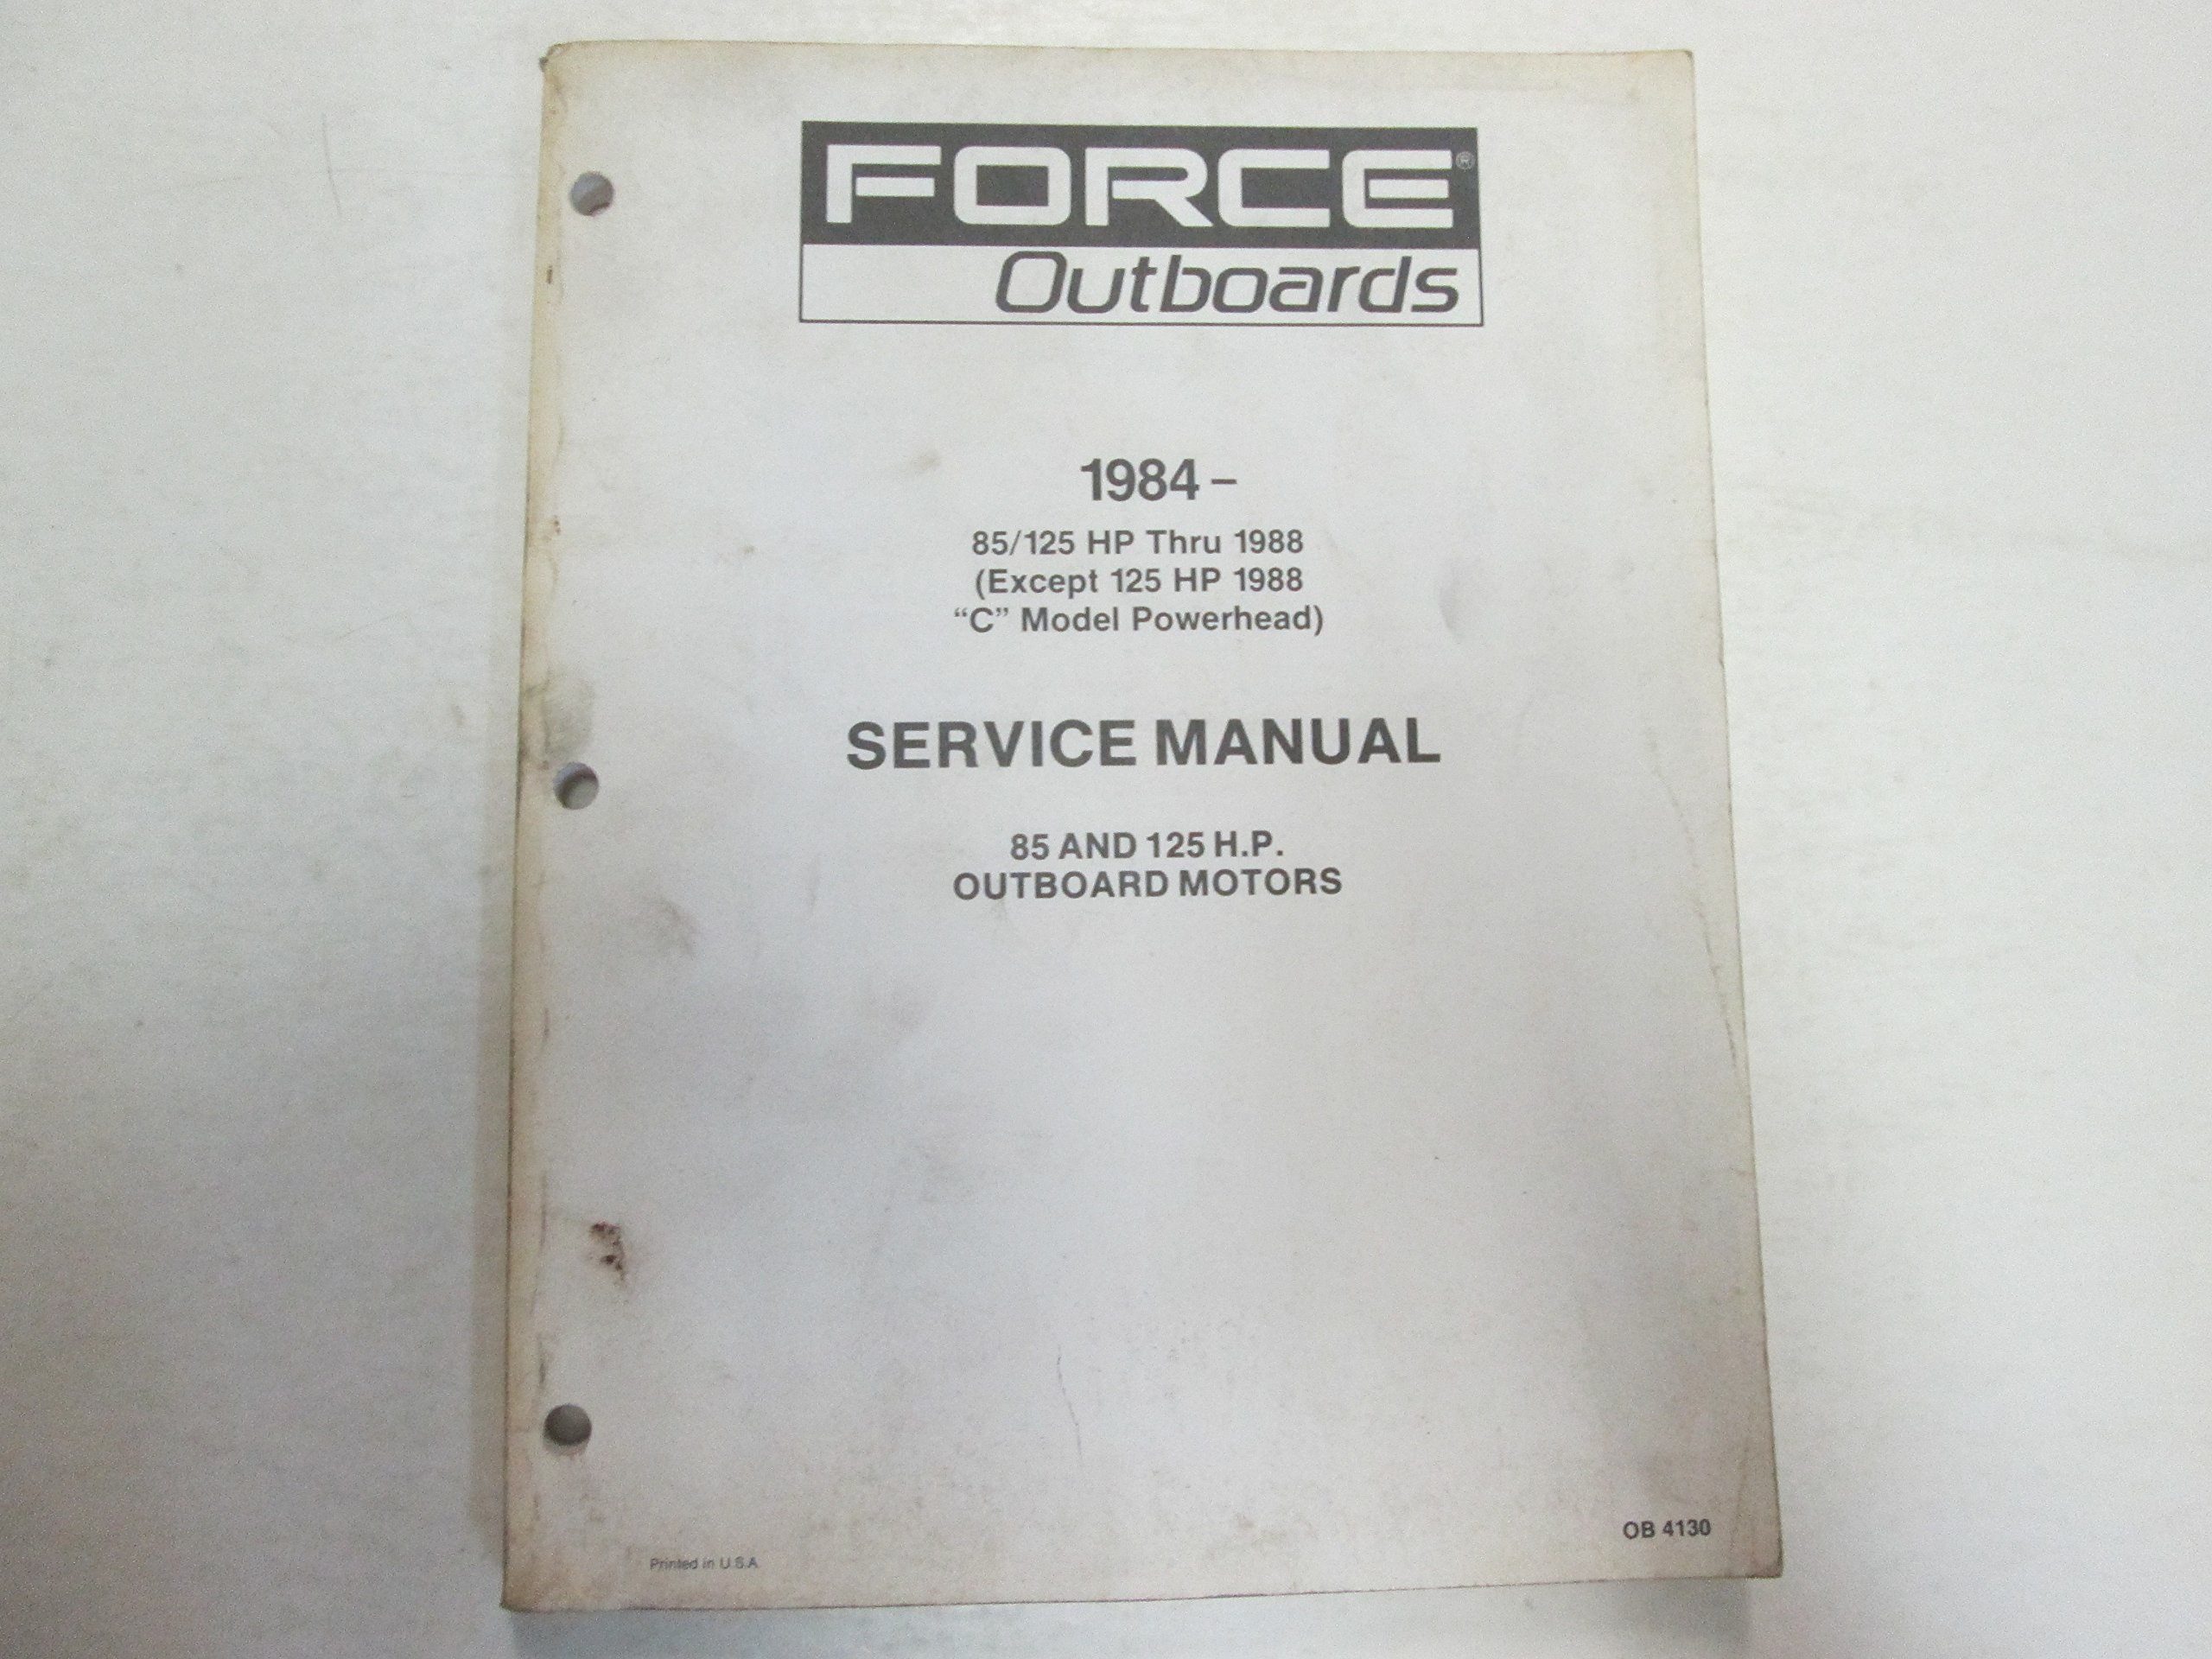 1984- Force Outboards 85 125 HP Thru 1988 Outboard Motors Service Manual  STAINED: Force: Amazon.com: Books